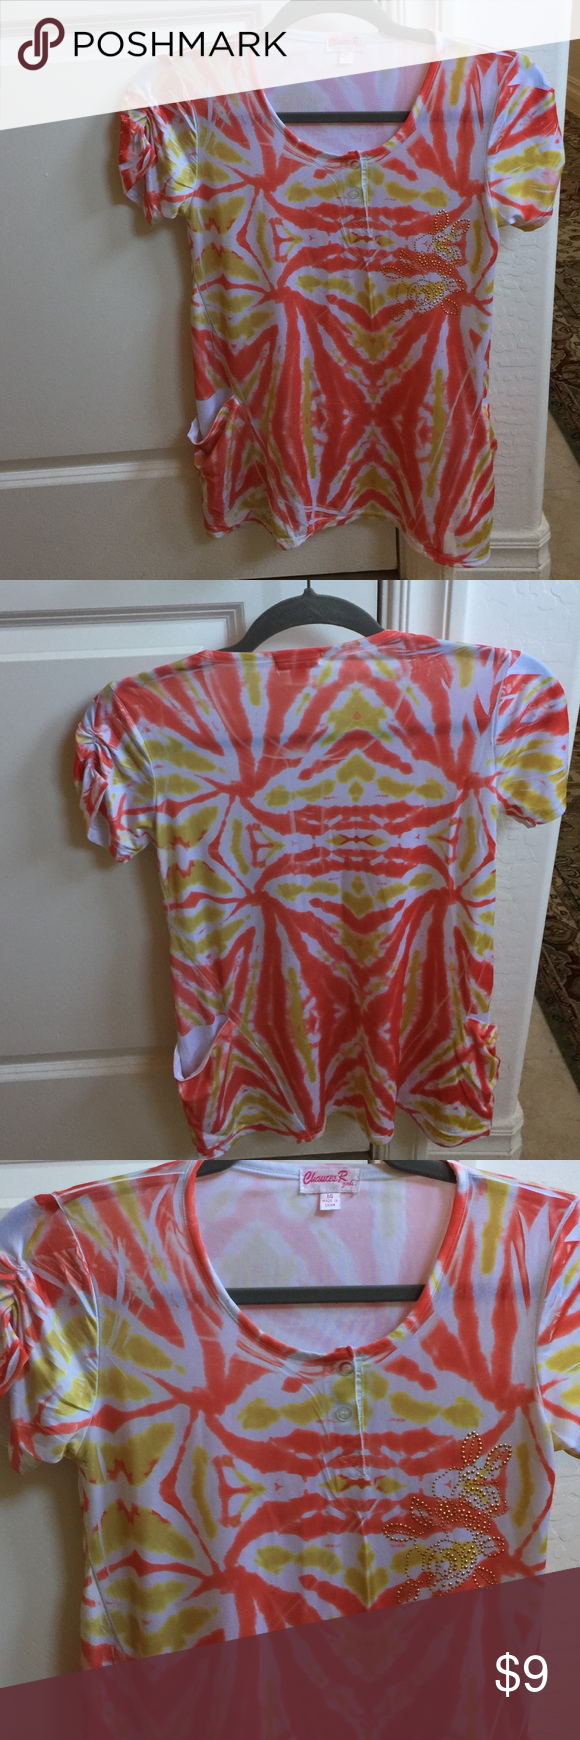 Tie-dye t-shirt SIZE: MEDIUM Very soft and silky tie dye shirt. Theres a studded design on the front and two discreet pockets on the front also. Tops Tees - Short Sleeve